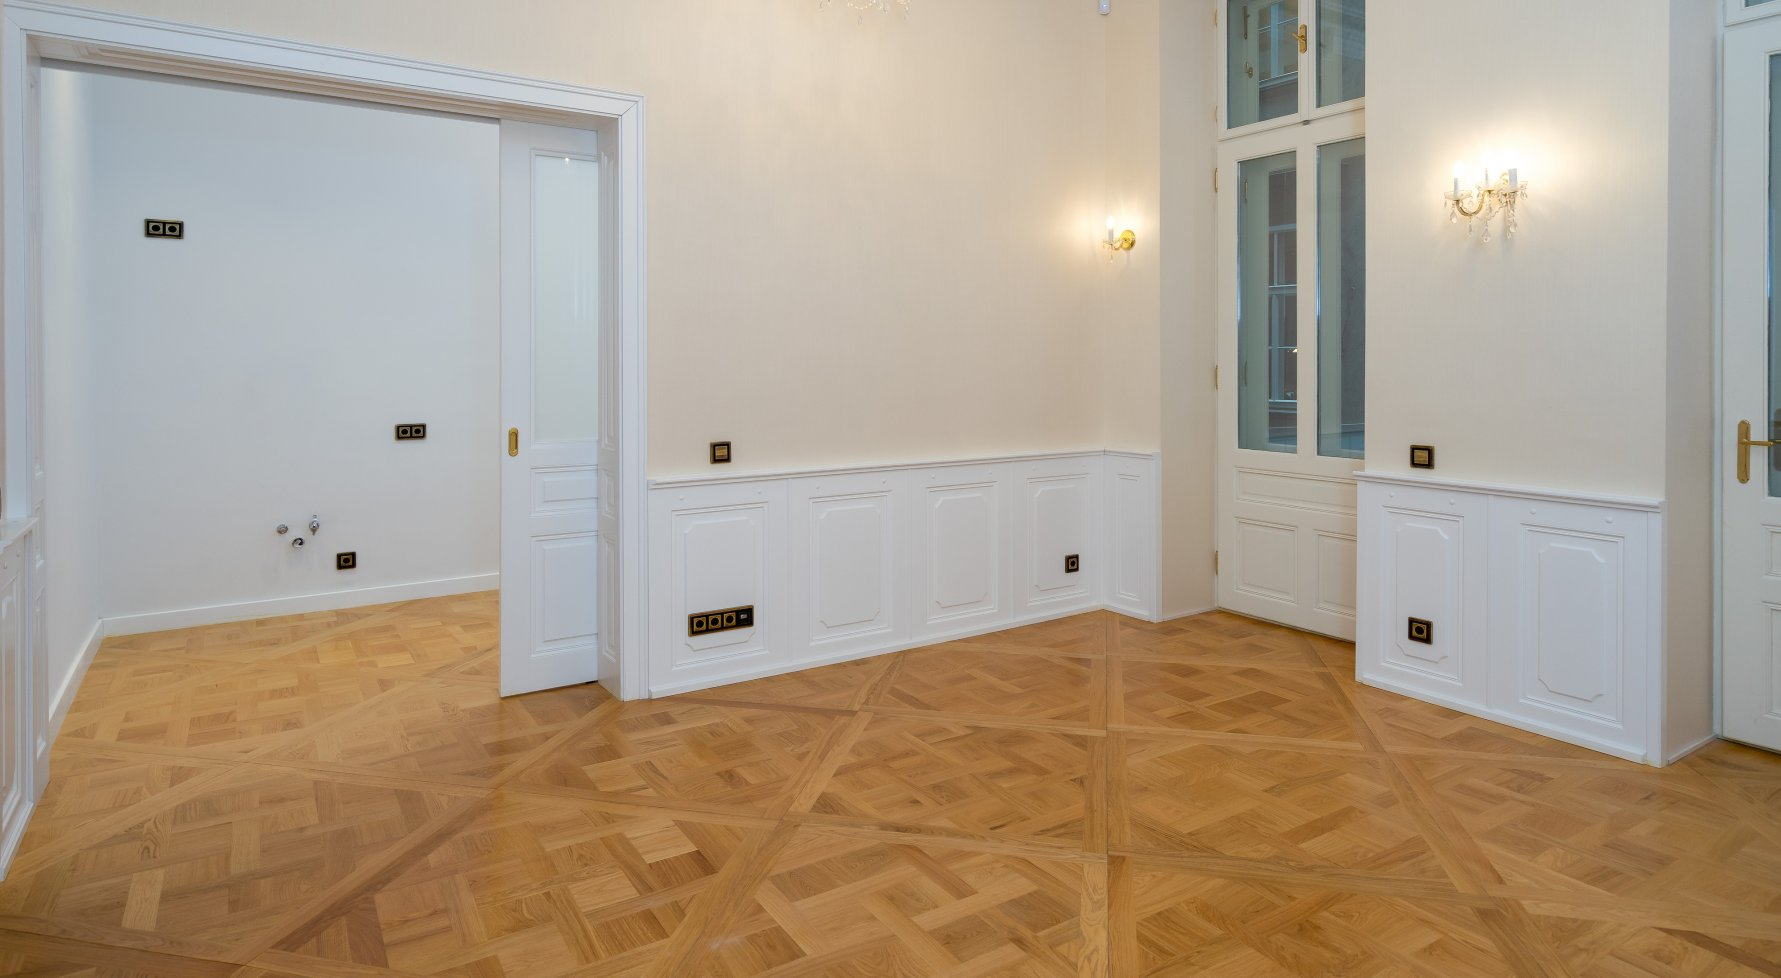 Property in 1010 Wien, 1. Bezirk: Attractive city residence - a home with Esprit! - picture 1